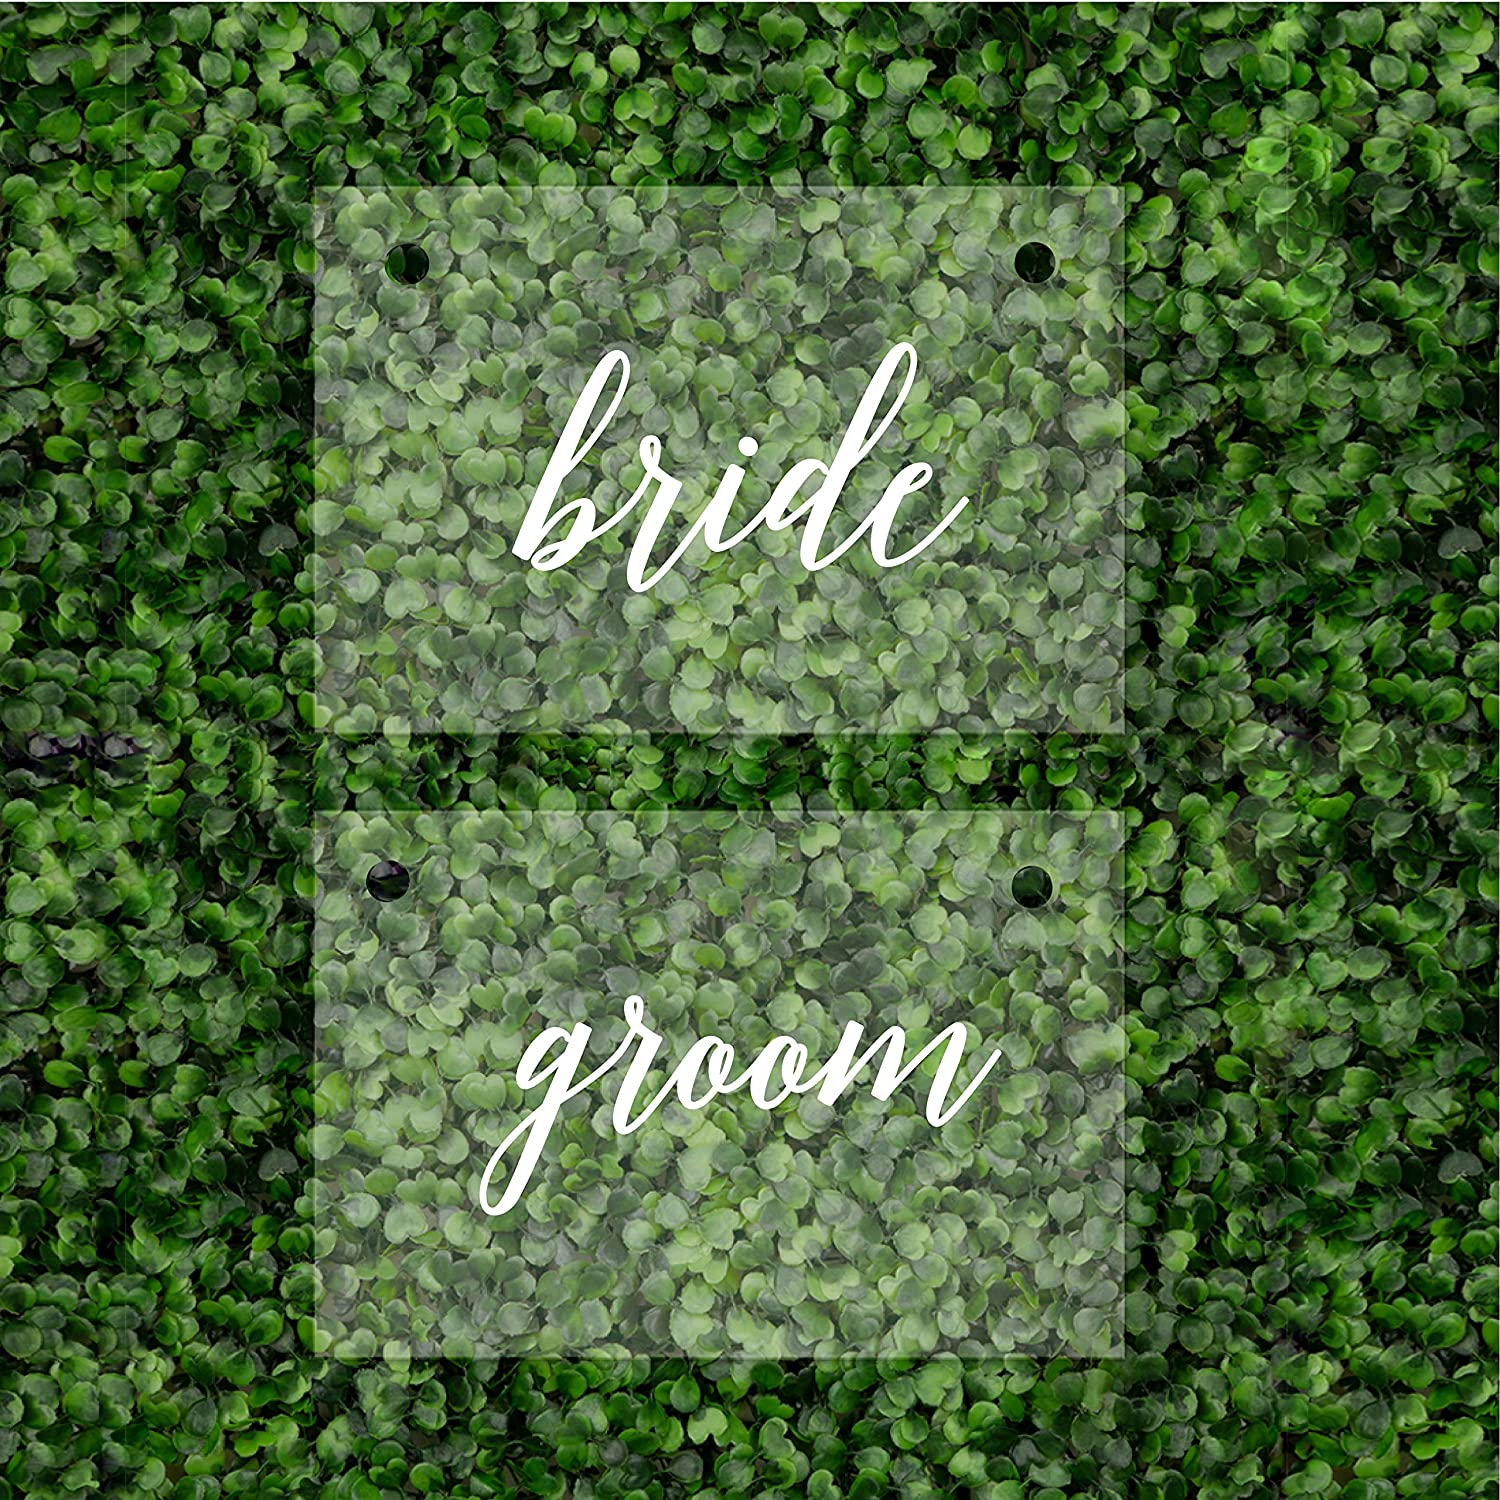 Andaz Press Bride Groom Acrylic Chair Signs, 7.5 x 11 Inch, Set of 2 Scripted White Font Rectangular Chair Back Signs for Wedding Reception, Sweetheart Table, Bridal Shower, Signage, Backdrop